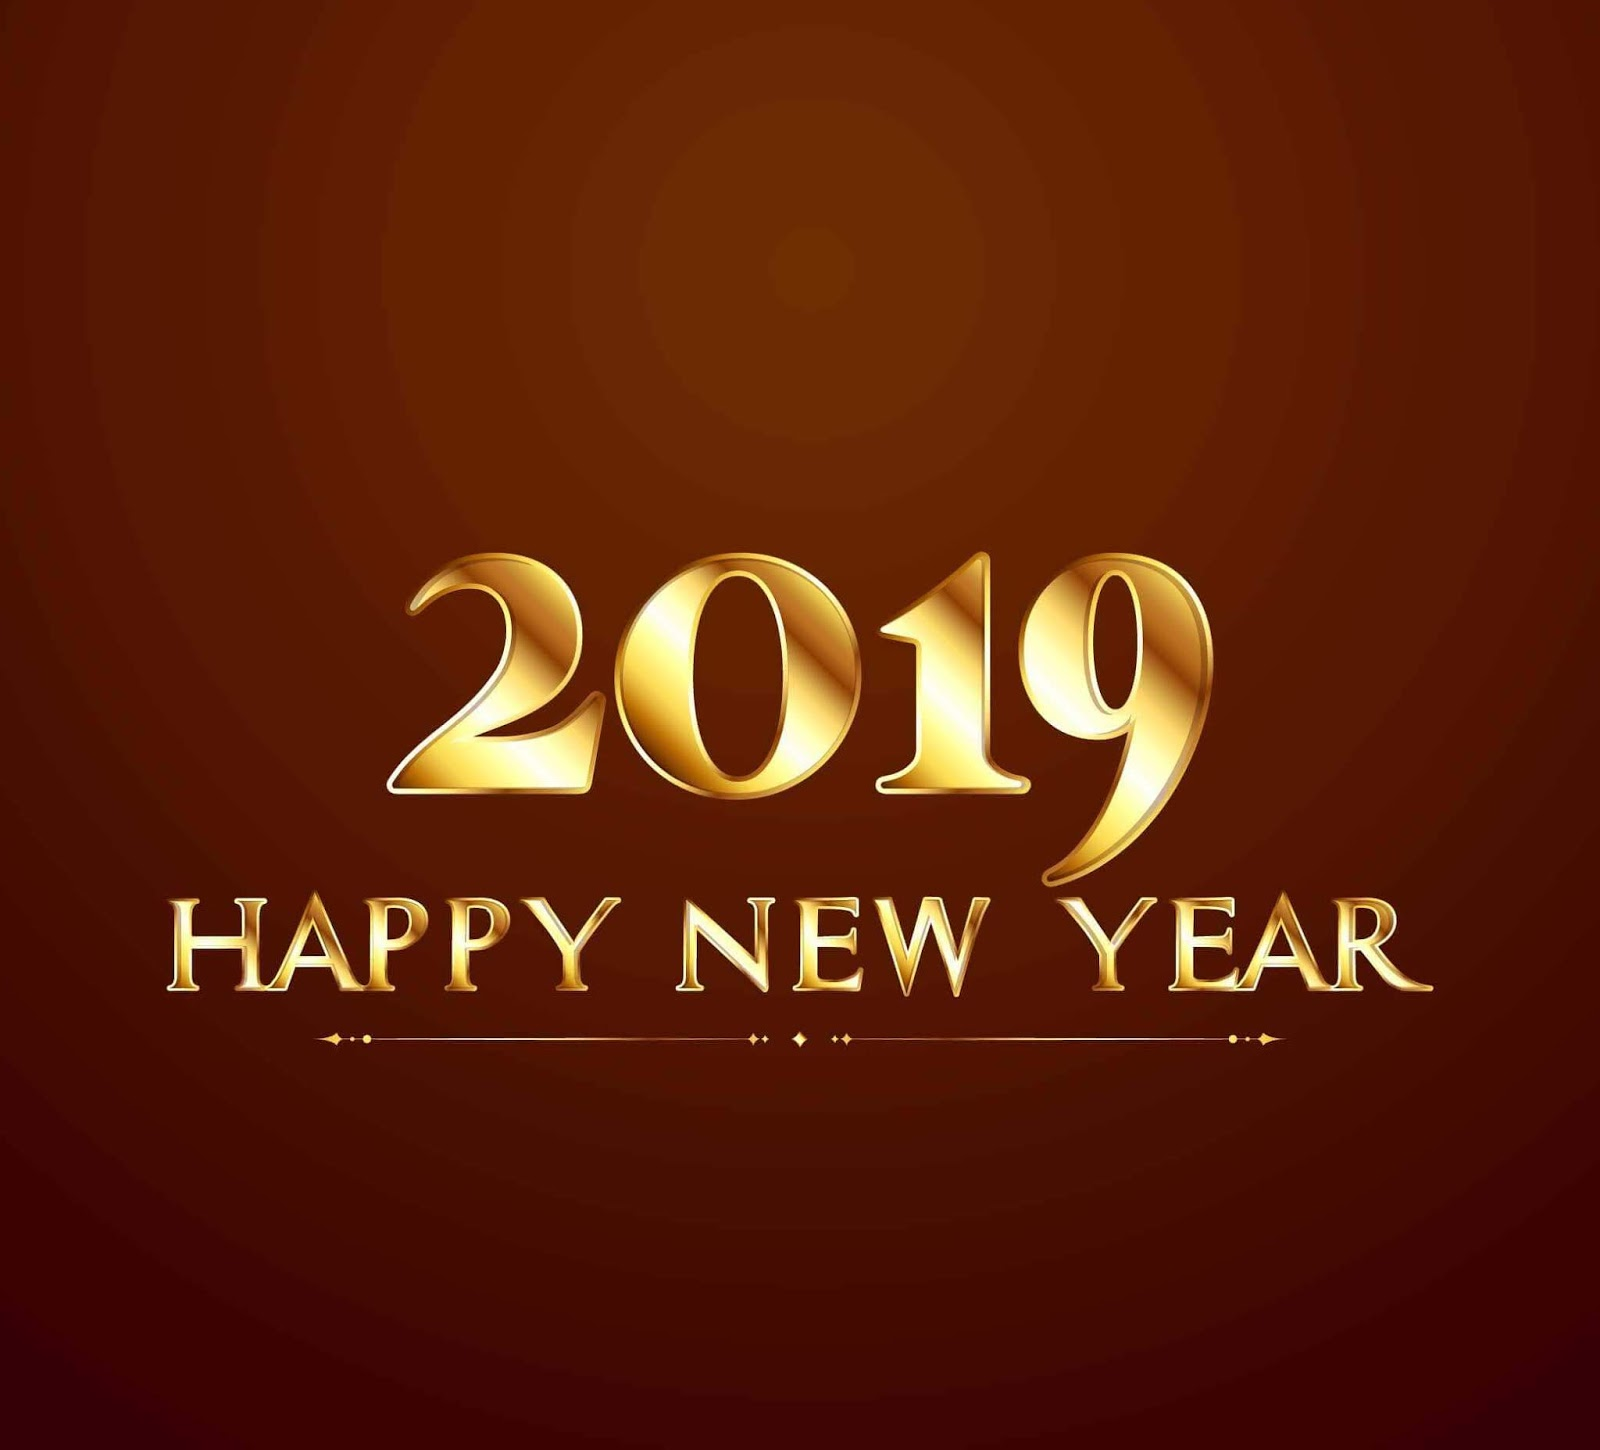 Happy New Year 2019 Images Download Free